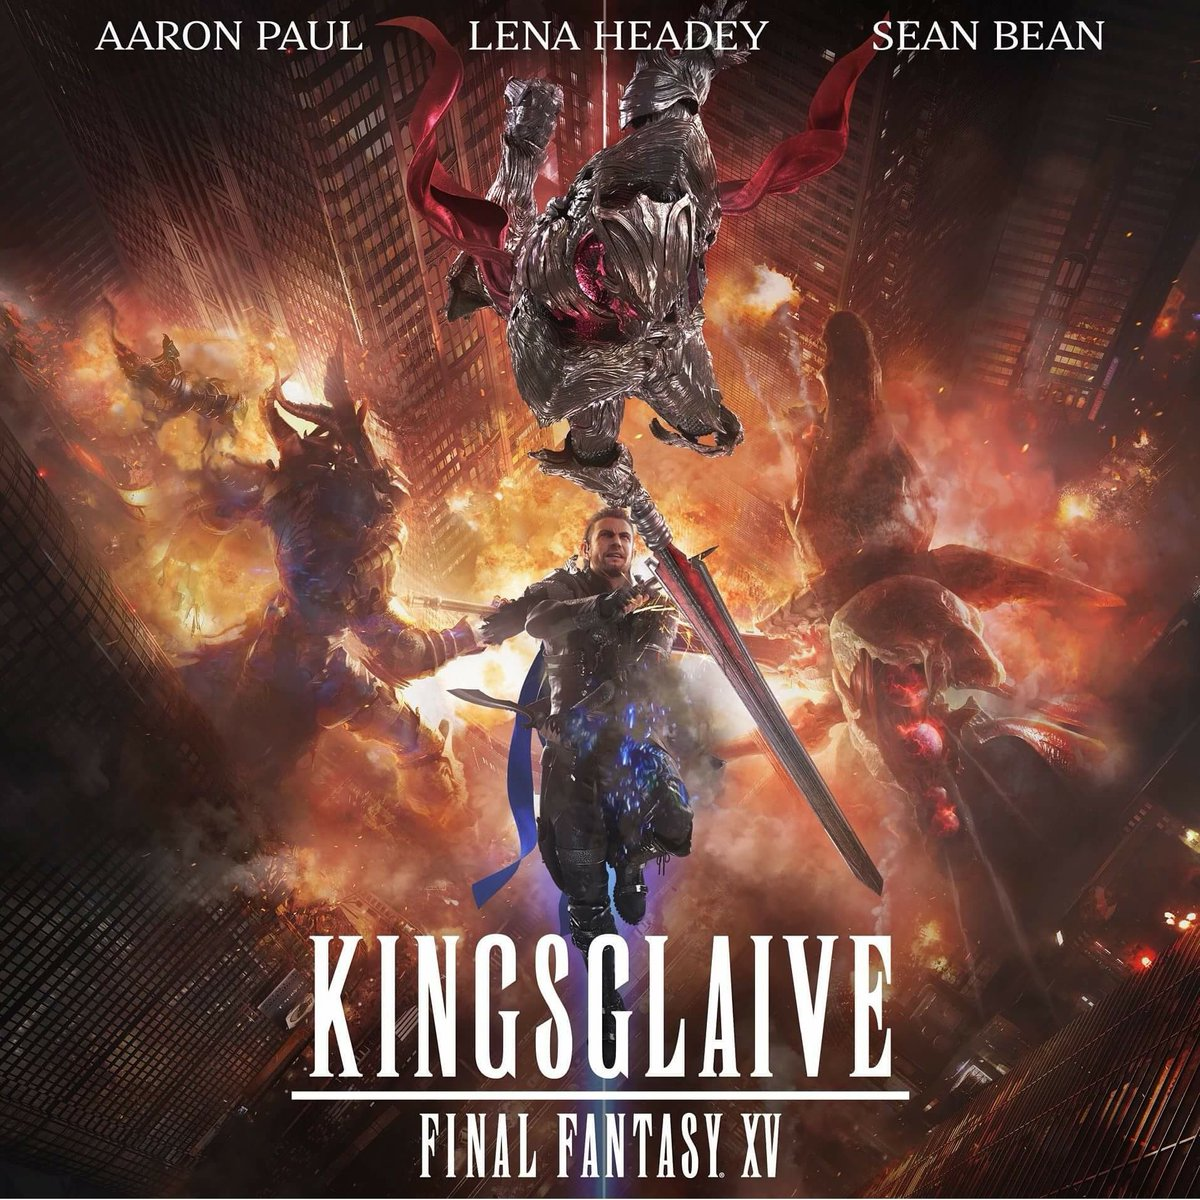 kingsglaive full movie download